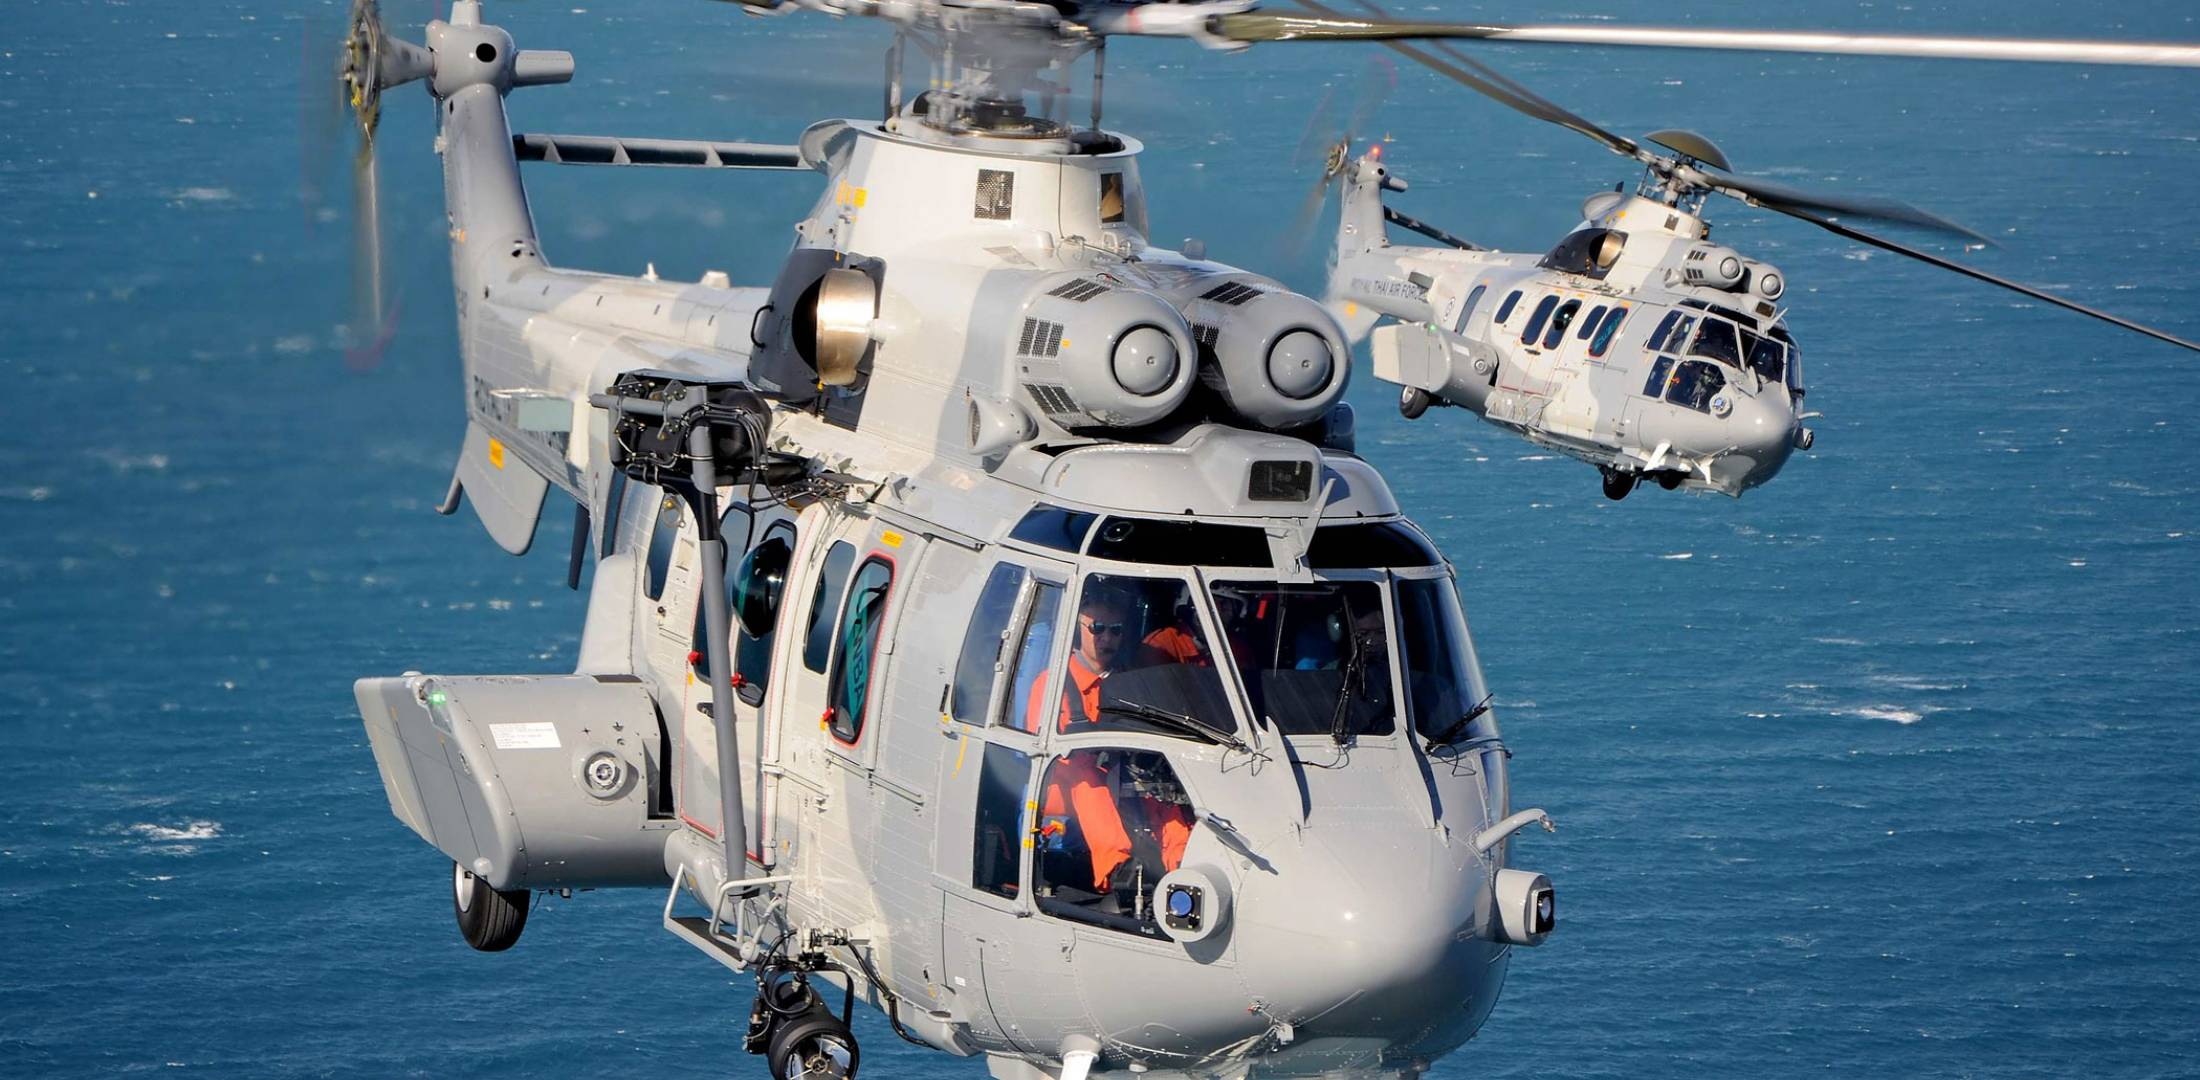 Airbus Helicopters EC725s in flight